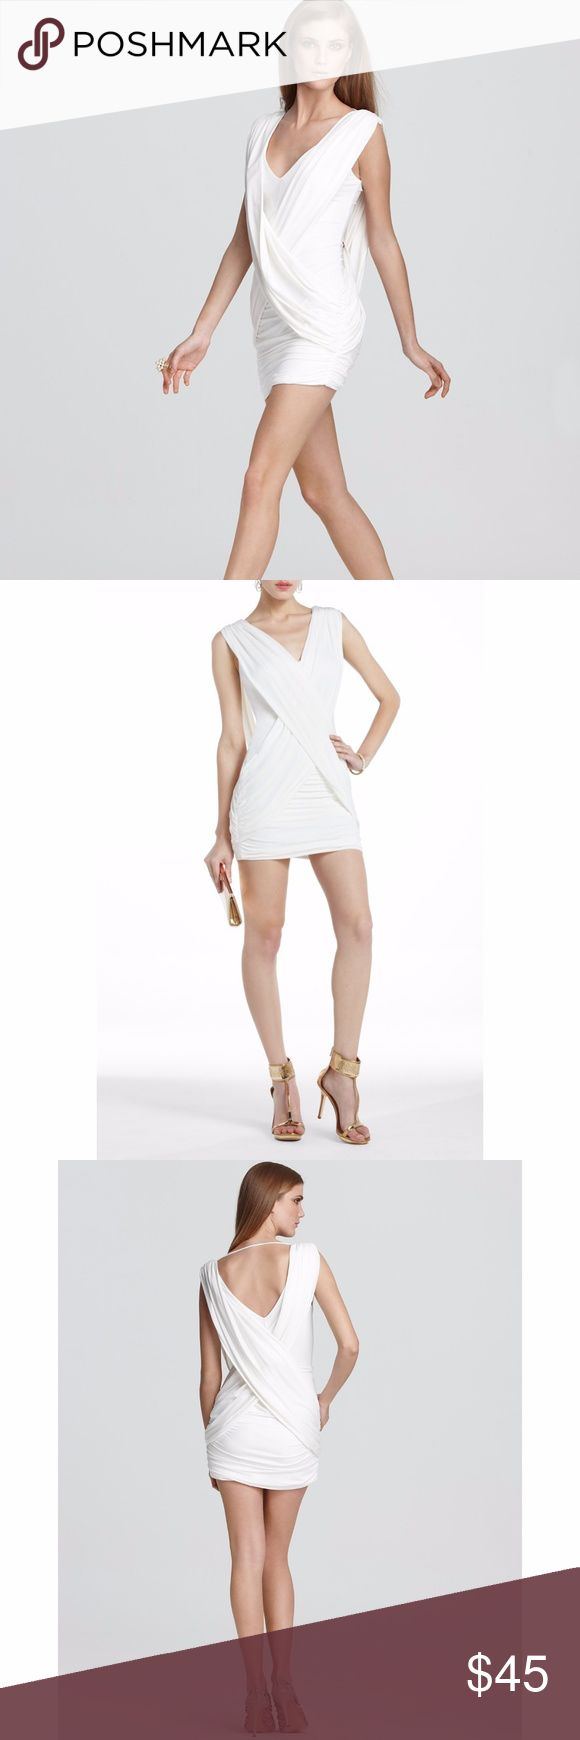 """BCBGMAXAZRIA white alondra dress Worn once. Great homecoming or semiformal / winter formal dress!  Allover ruching and dramatic crossover drapes define this fluid jersey style.  Surplice neckline Sleeveless Crossover front drape Allover ruching Crossover back with spaghetti strap detail About 18"""" from natural waist Acetate/nylon/spandex Dry clean BCBGMaxAzria Dresses"""